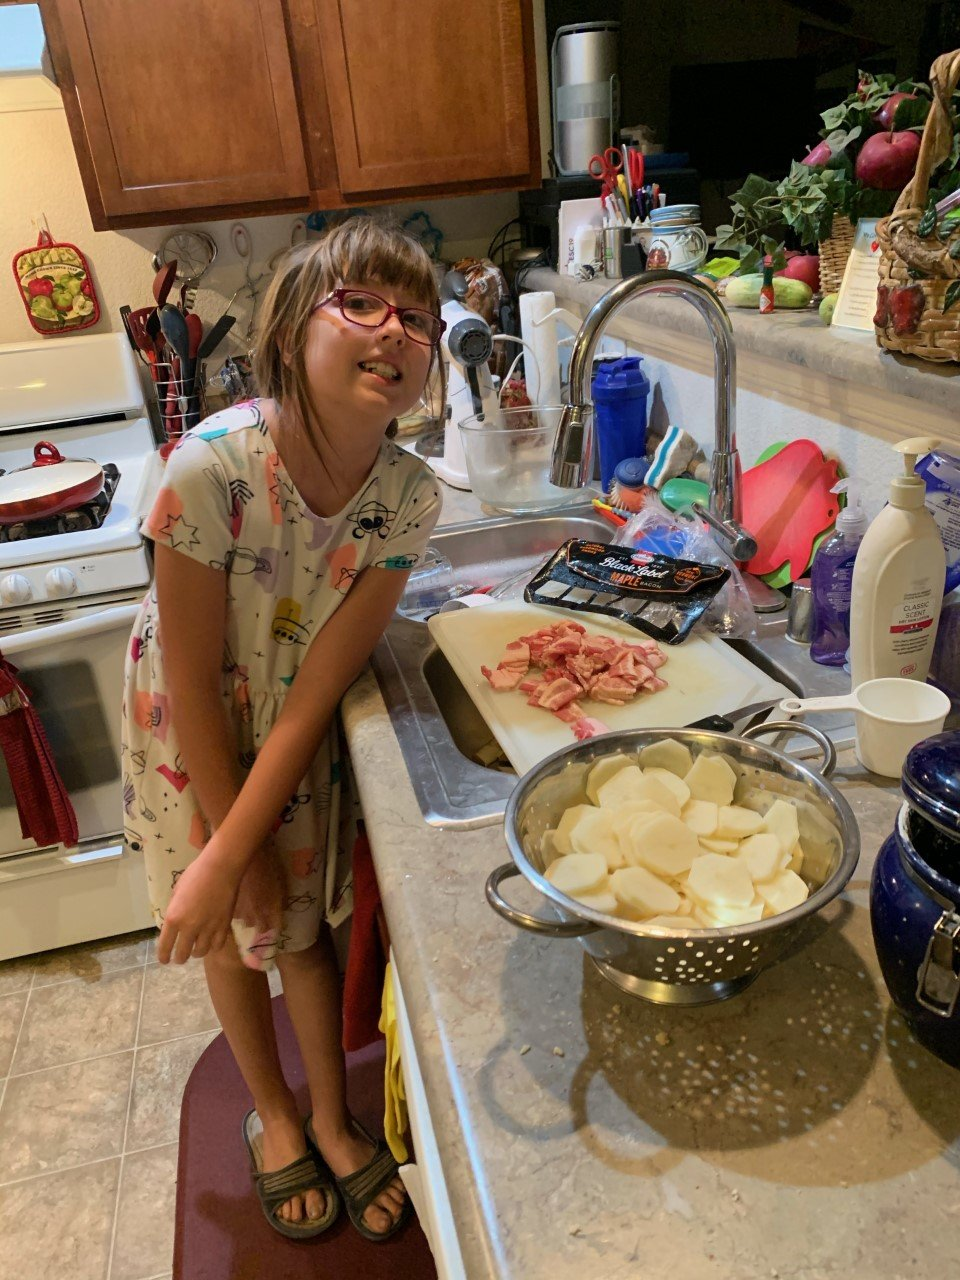 Danica White, a fourth grader at Fairacres Elementary School, made an entire German meal as part of teacher of the gifted Barb Ericson's project studying other cultures and countries, including Germany.